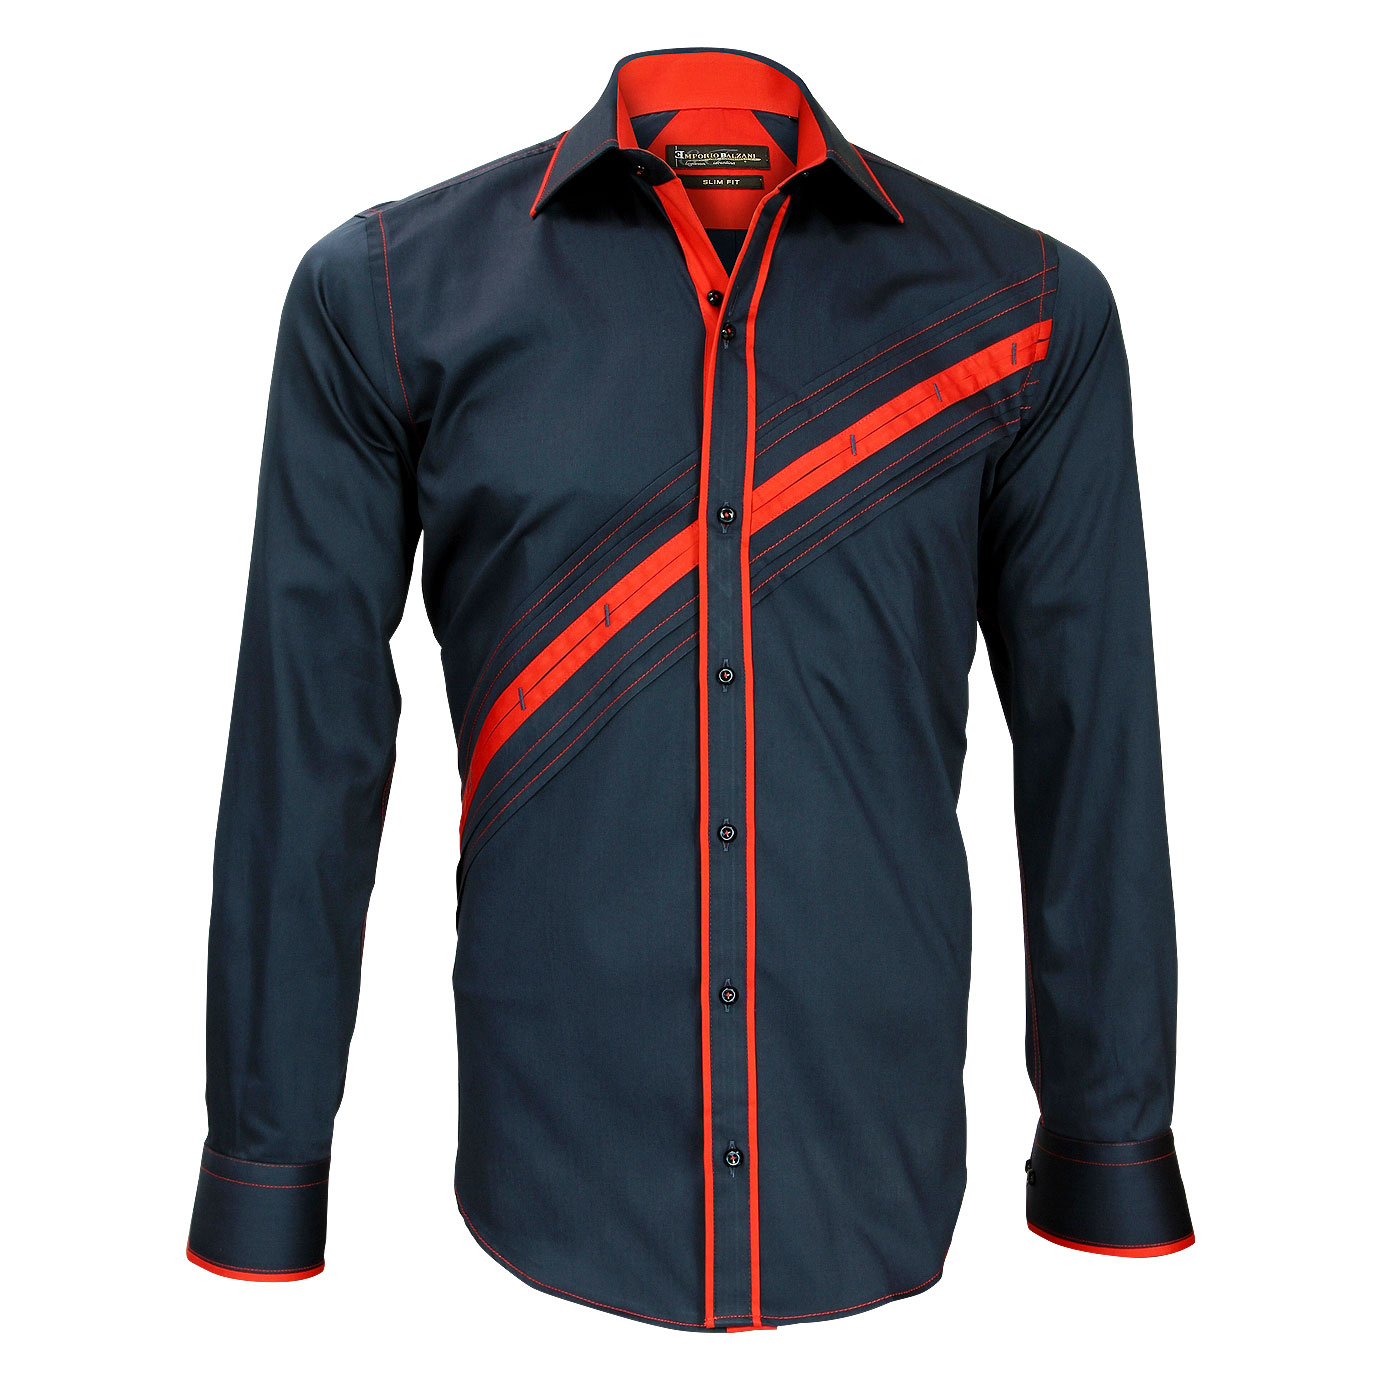 Men's Fashion Fitted Shirt +600 Models on Webmenshrits